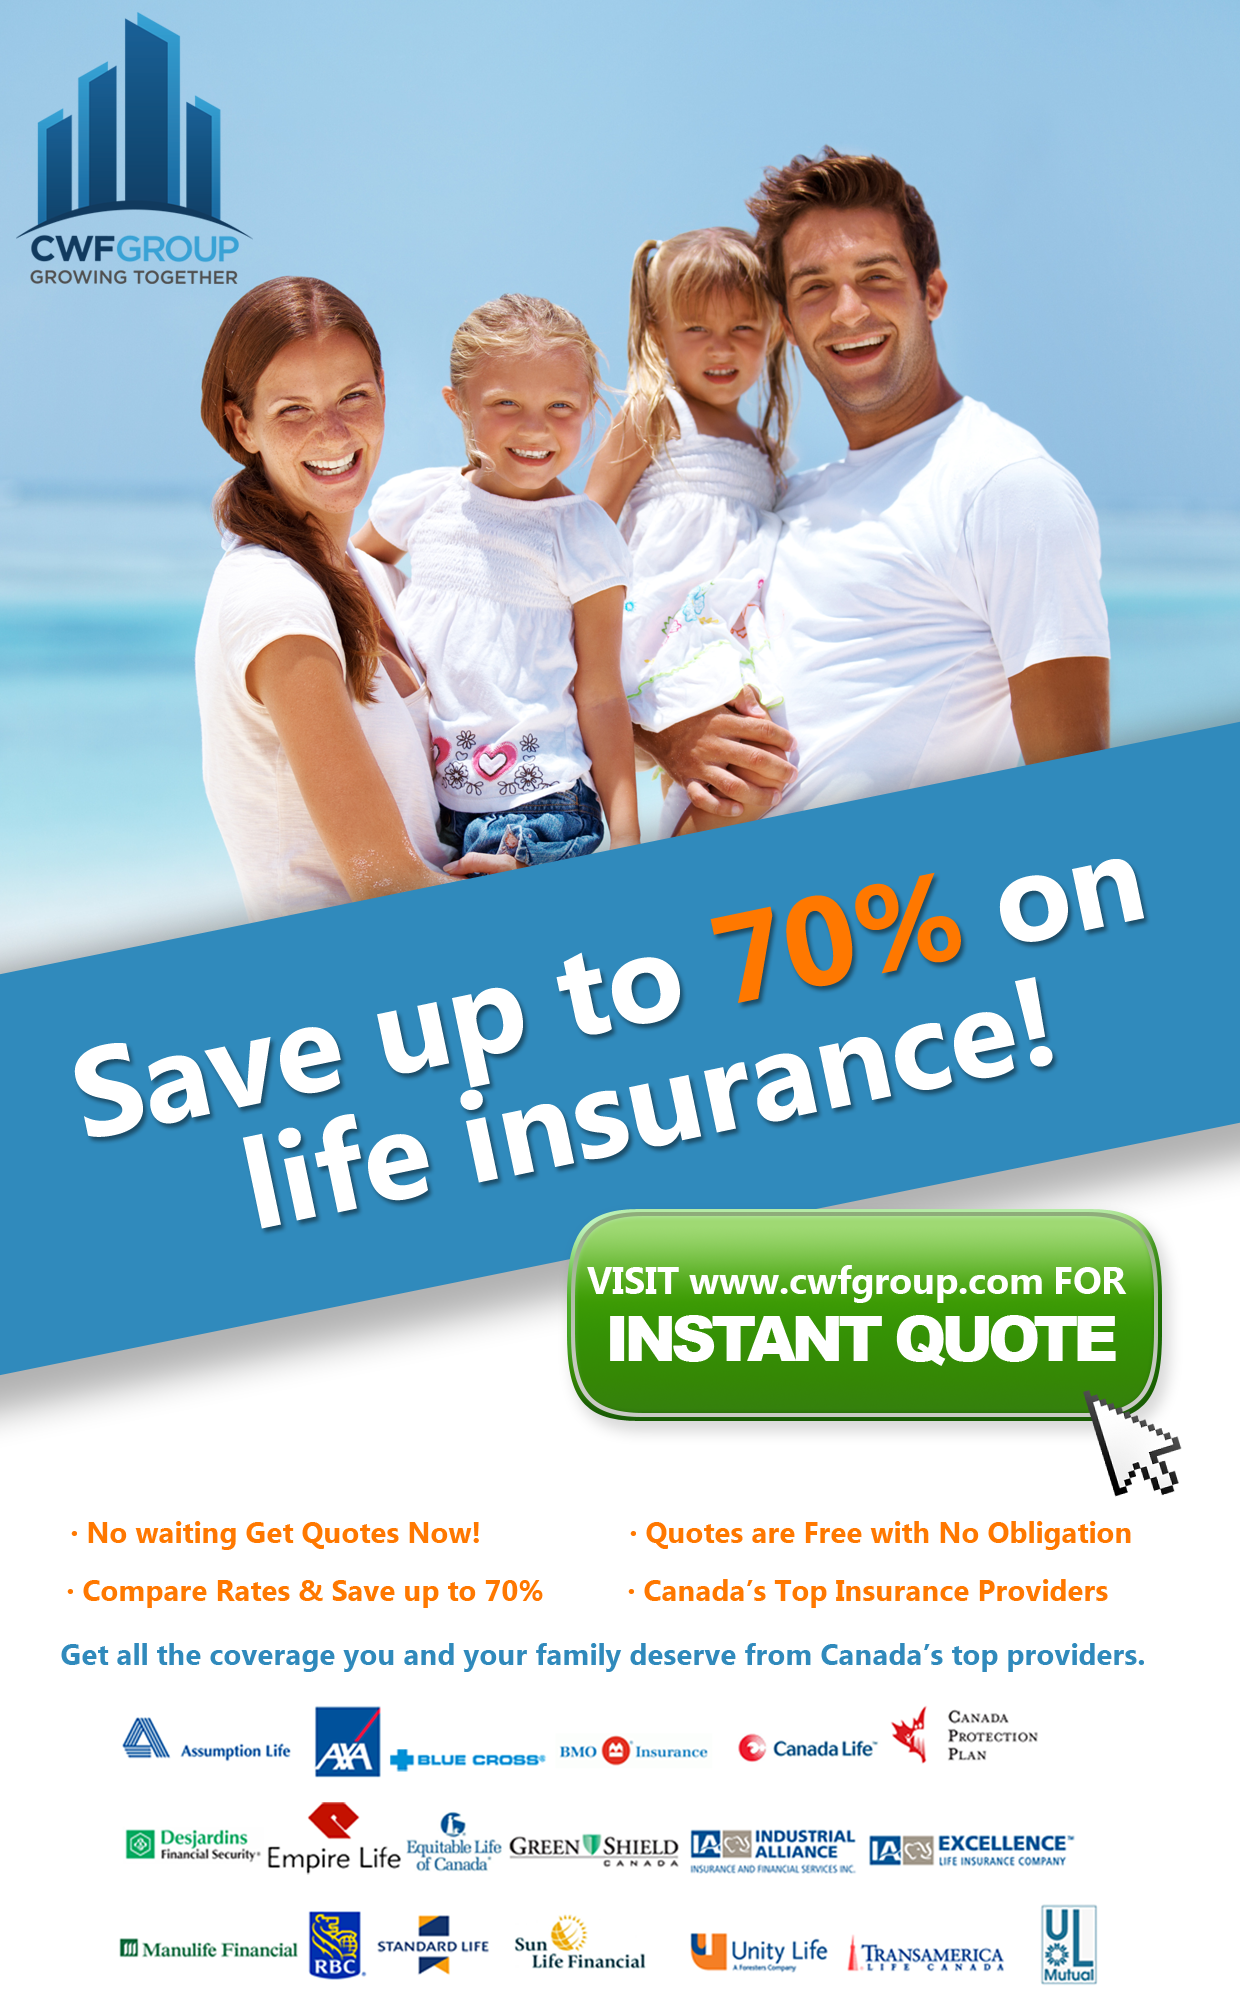 Life Insurance Cwf Group Inc